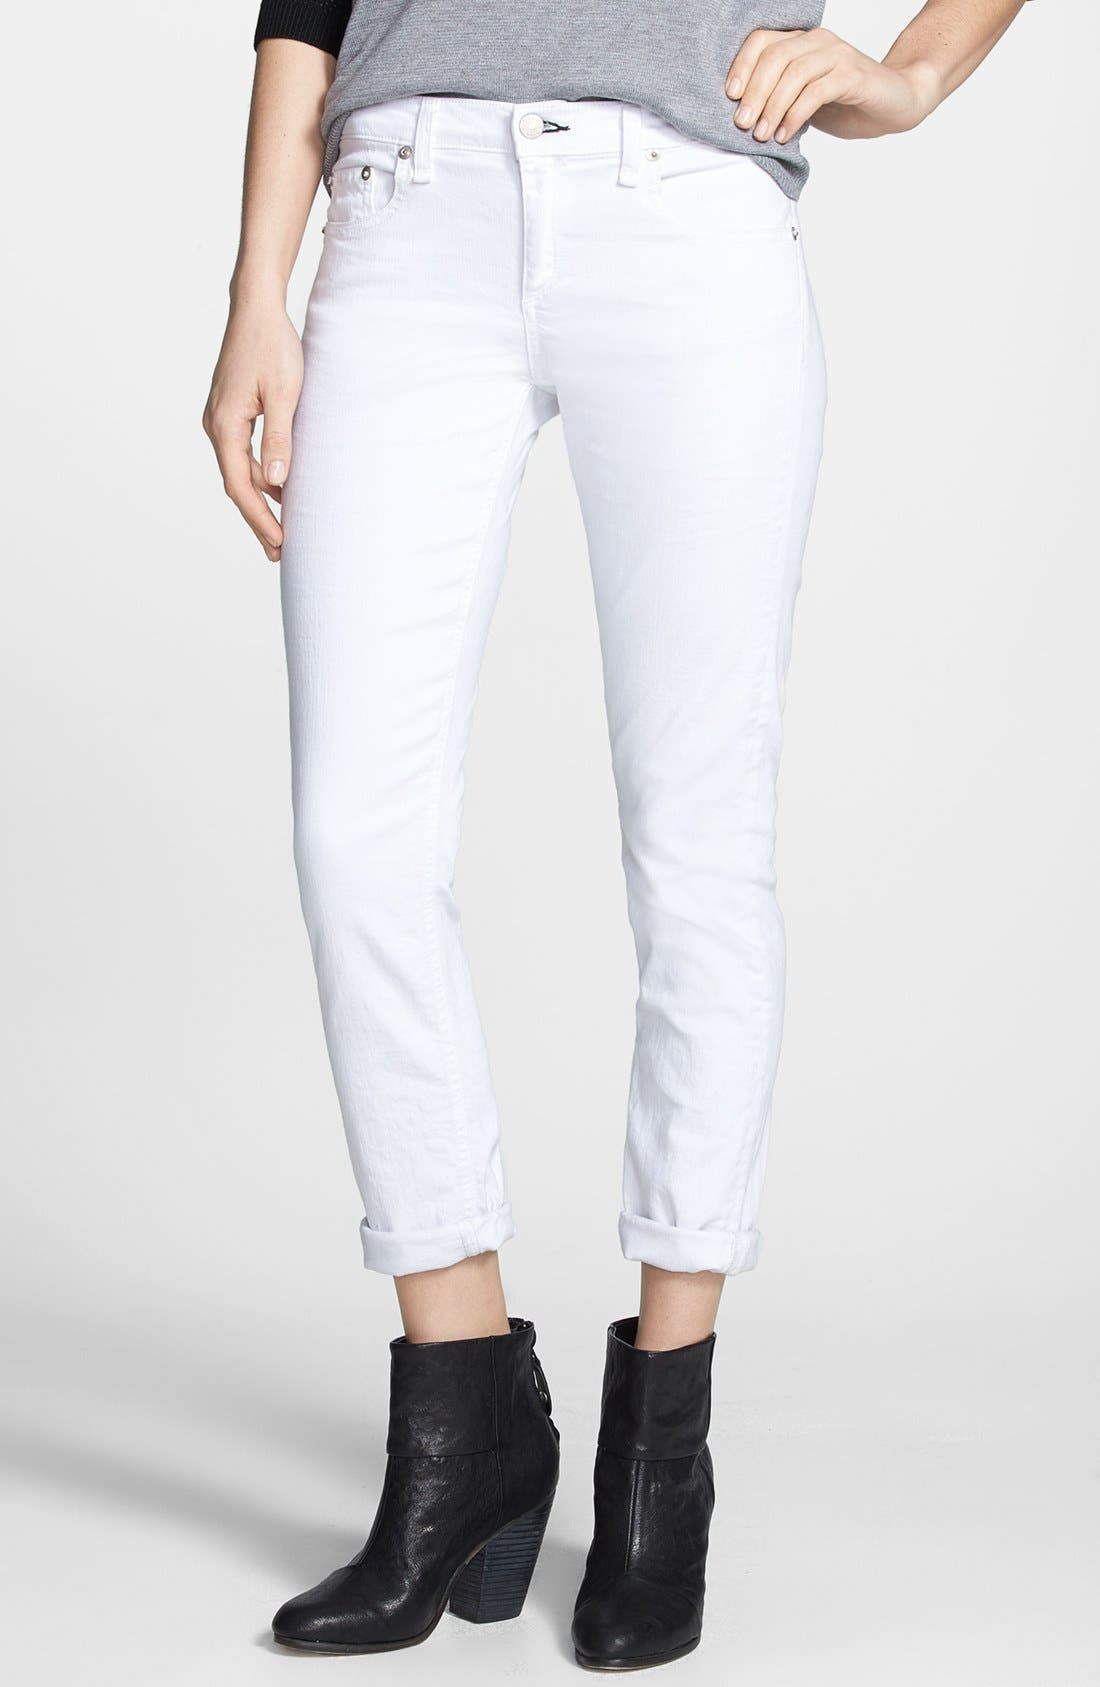 Alternate Image 1 Selected - rag & bone/JEAN 'The Dre' Skinny Jeans (Aged Bright White)